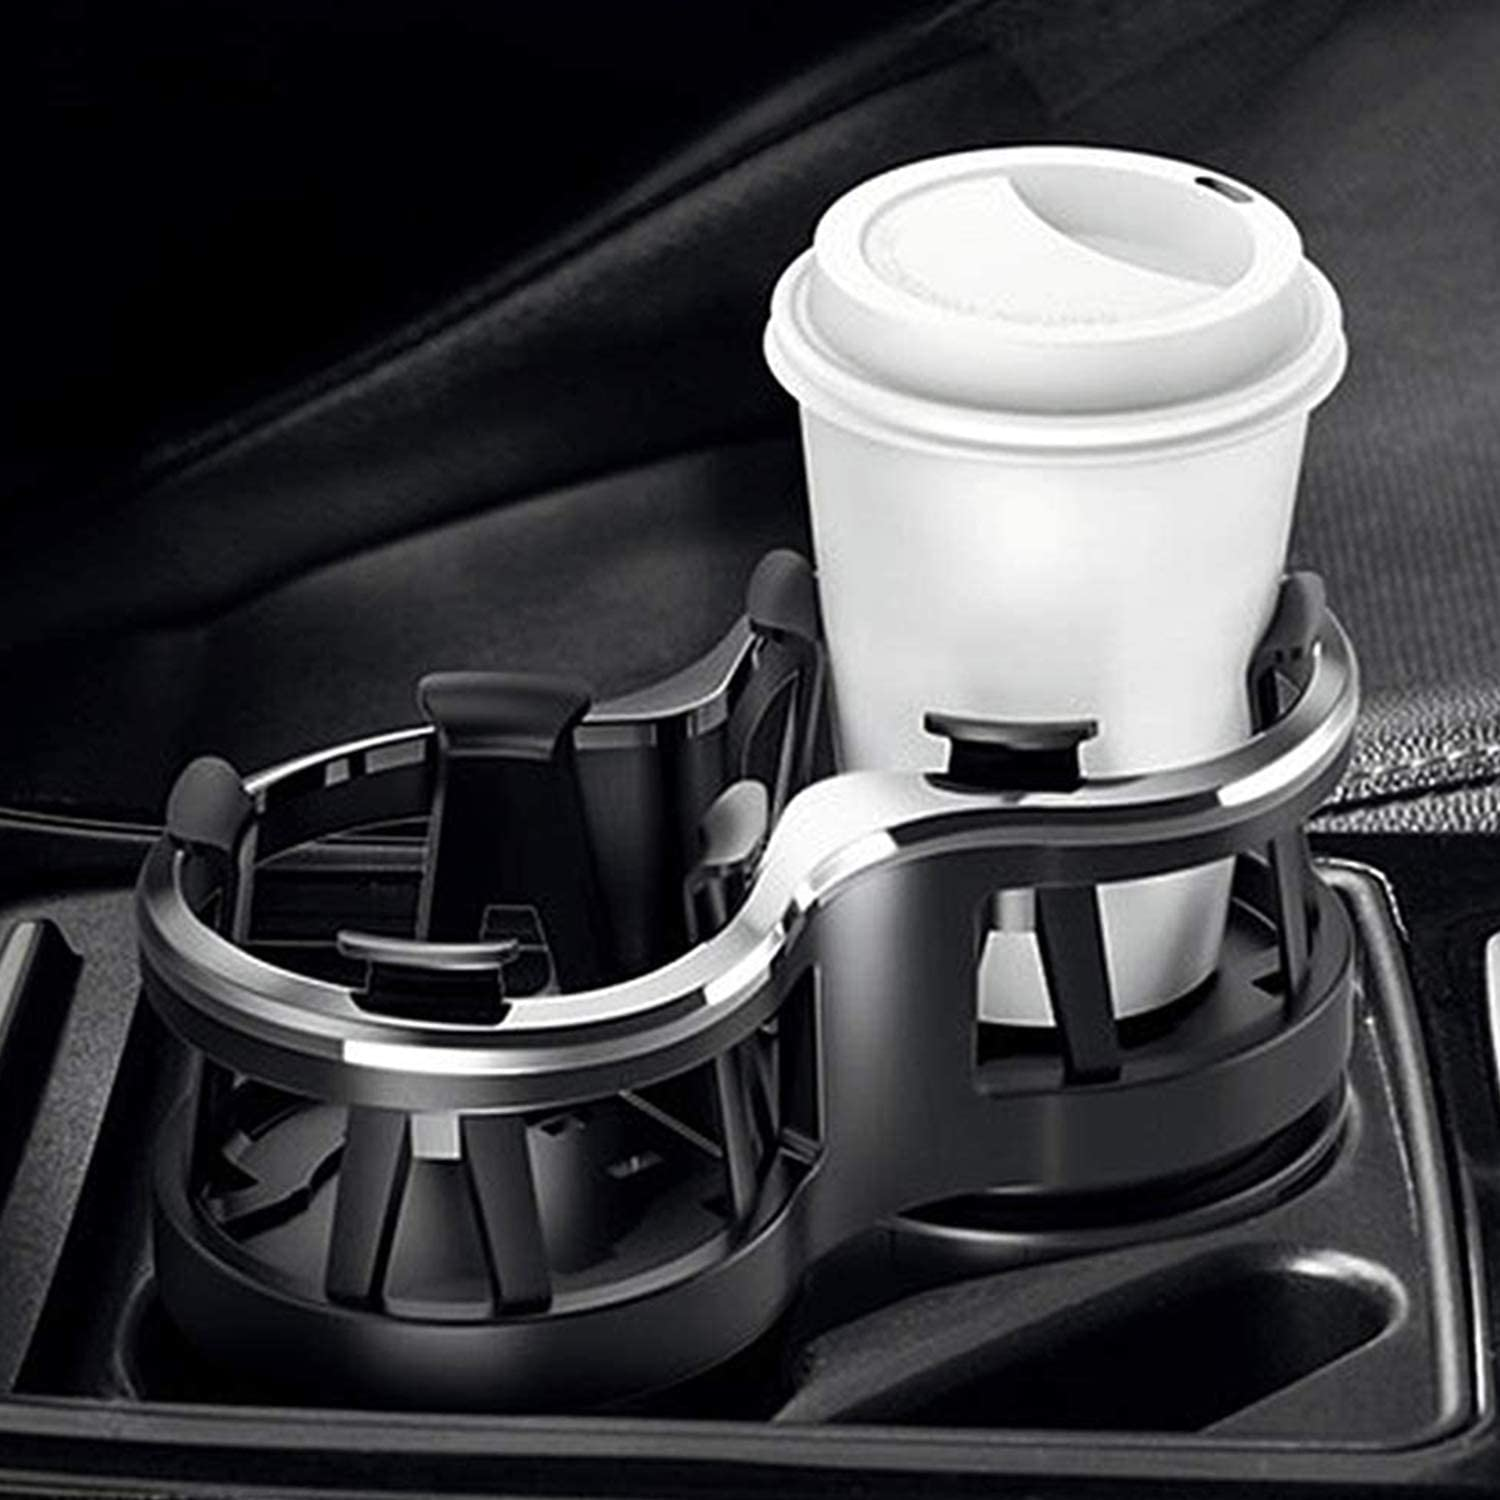 Car Cup Holder Drink Holder 2 in 1 Multifunctional Adjustable Base Cup Mount Extender for Car Drink Can Coffee Bottle Stand